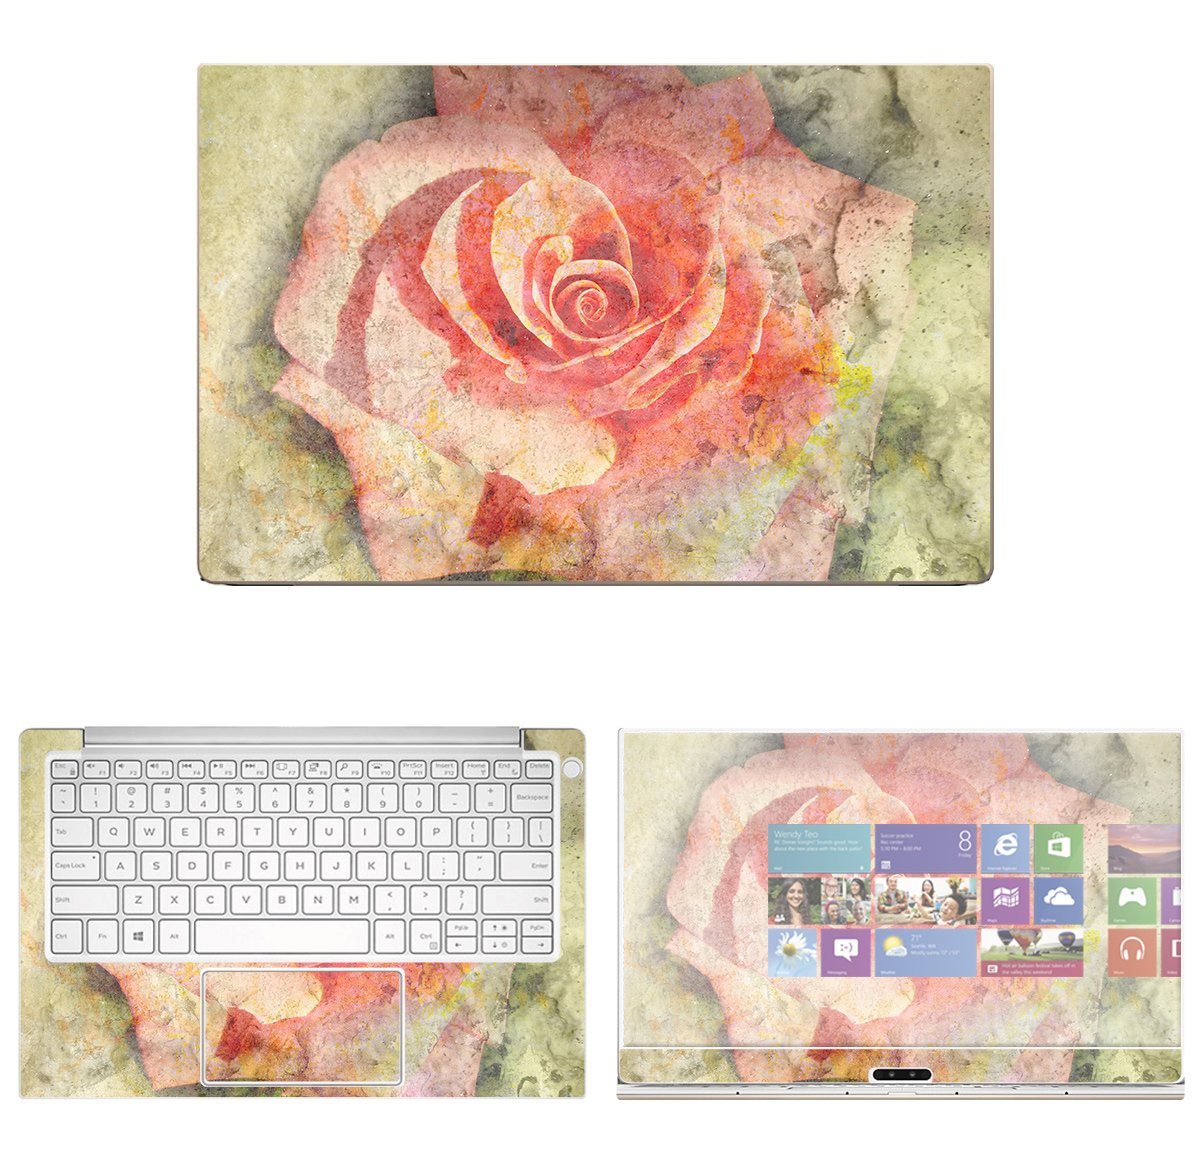 decalrus - Protective Decal Rose Skin Sticker for Dell XPS 13 9370 (13'' Screen) case Cover wrap DExps13_9370-113